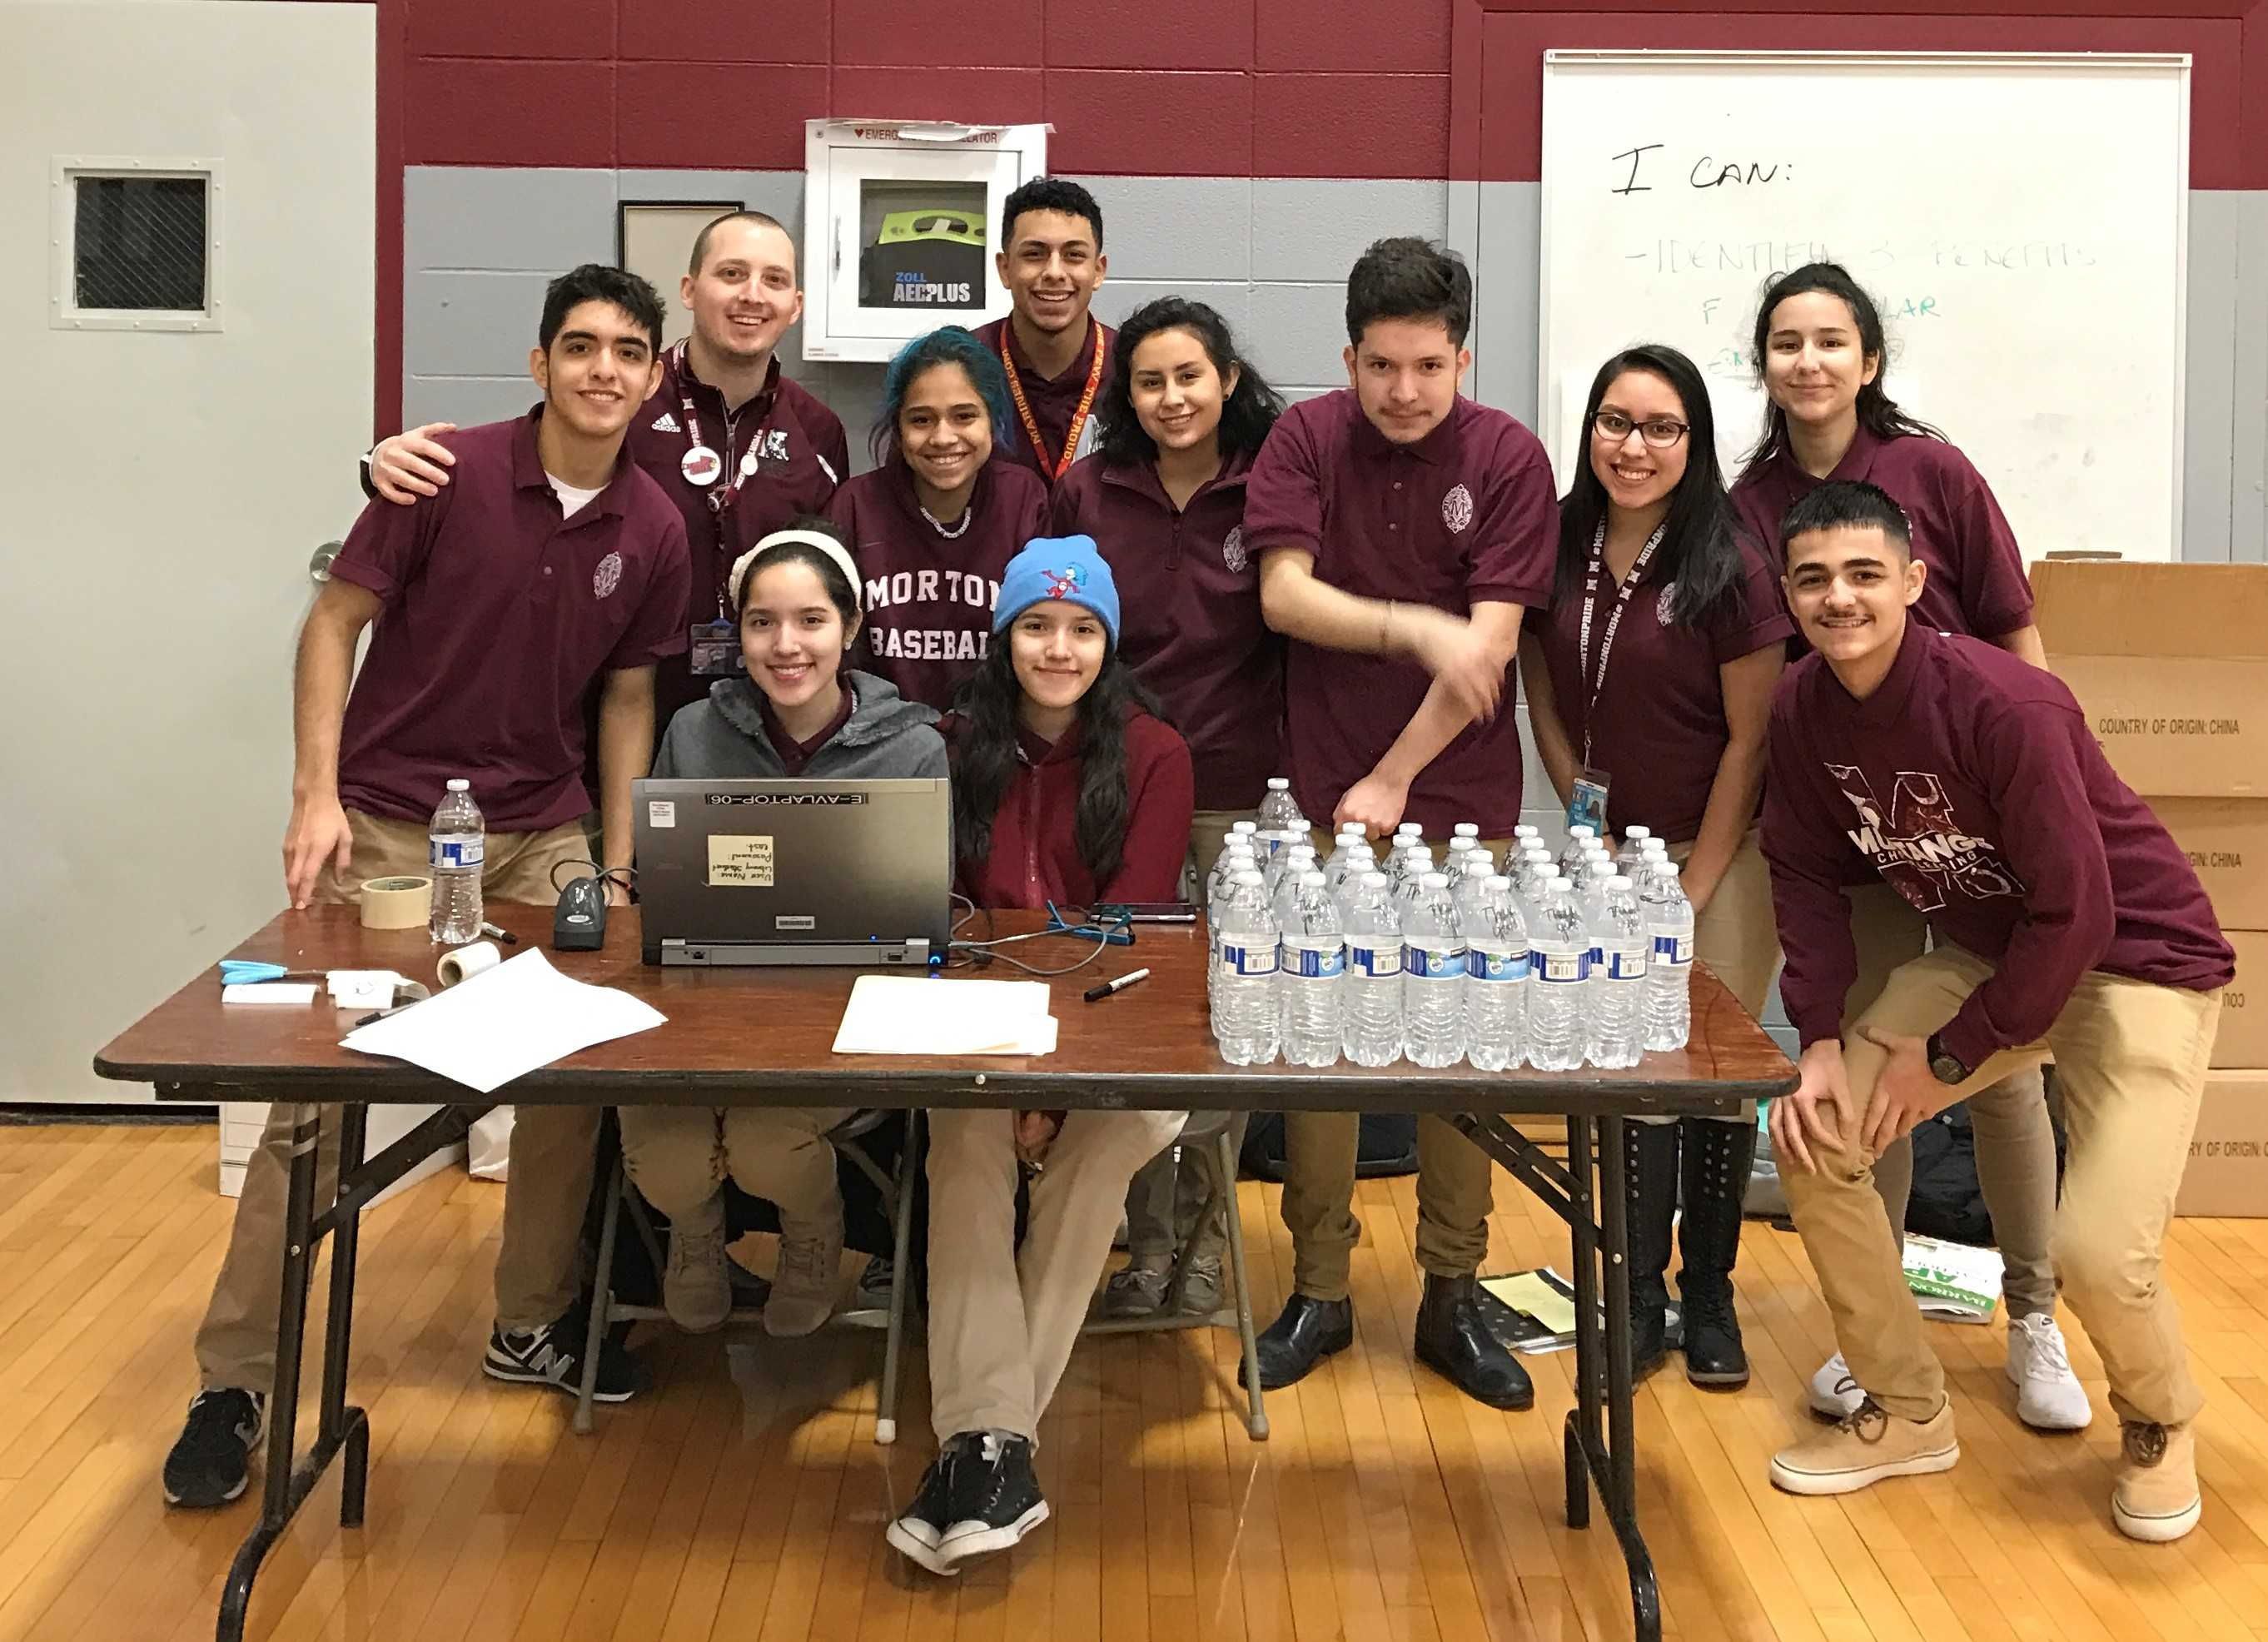 Morton East Snowball (From left to right: Alex Mendoza, Mr. Lunz, Miriam and Mira Maldonado, Imelda Nunos,Tony Marrero, Karol Garfias, Erick Lugano, Melanie Nava, Erick Munoz, Natalia) adding the students for the blood drive procedure.